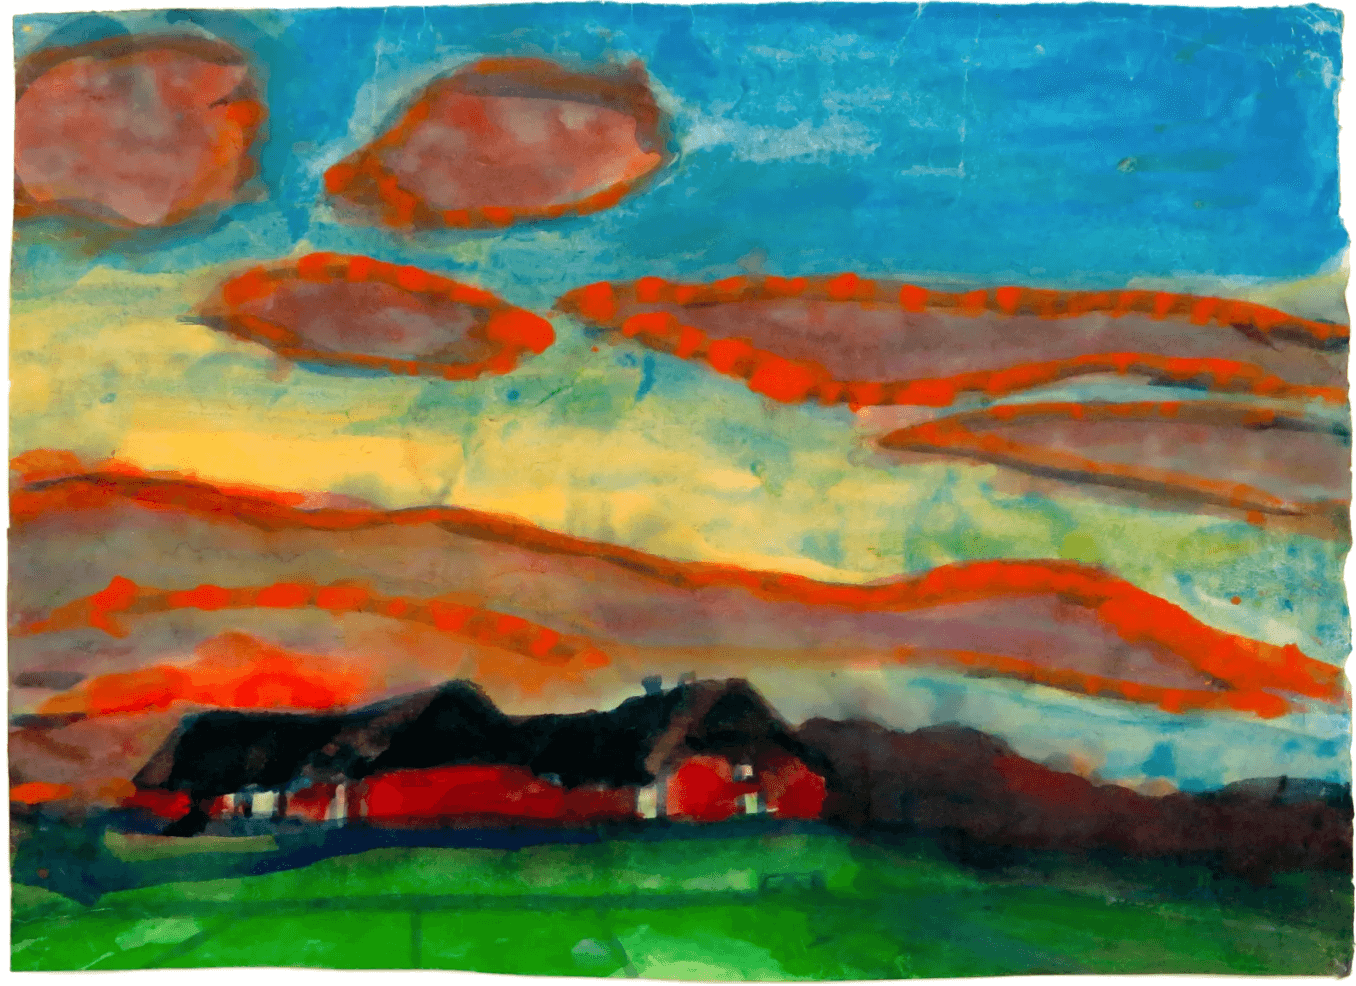 Emil Nolde Seebüll Farm in Nordfriesland Evening Mood 1935 1940